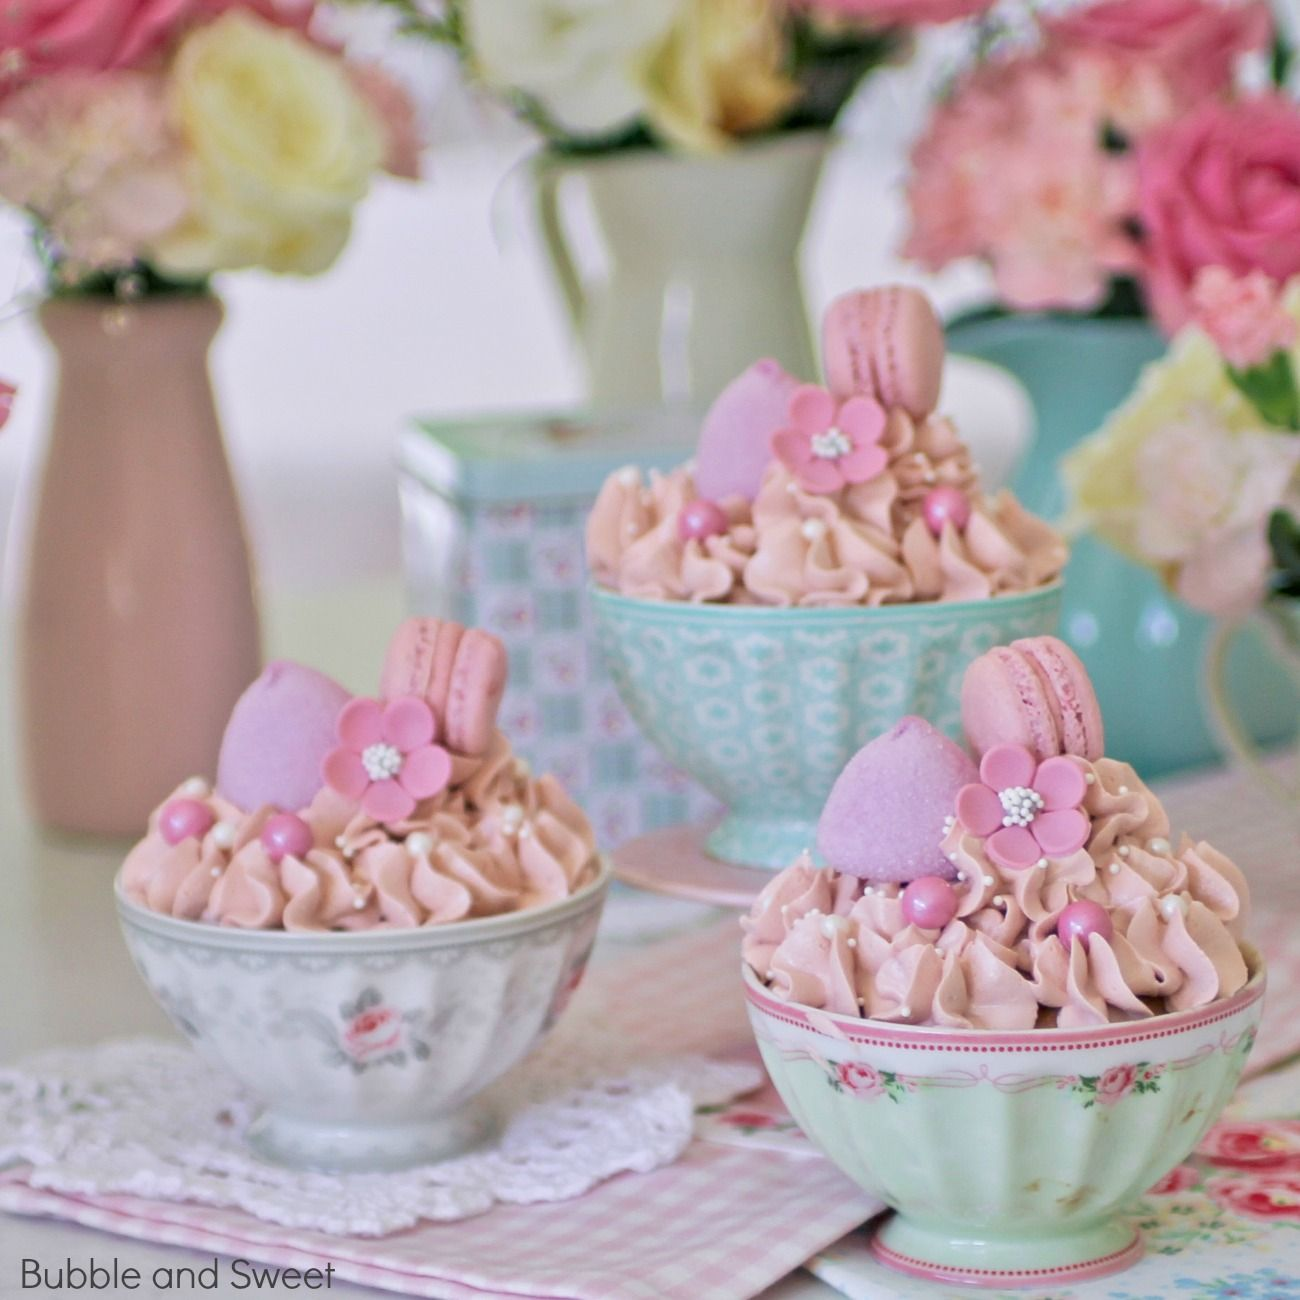 Bubble And Sweet Baking Pretty Cupcakes In Greengate Bowls